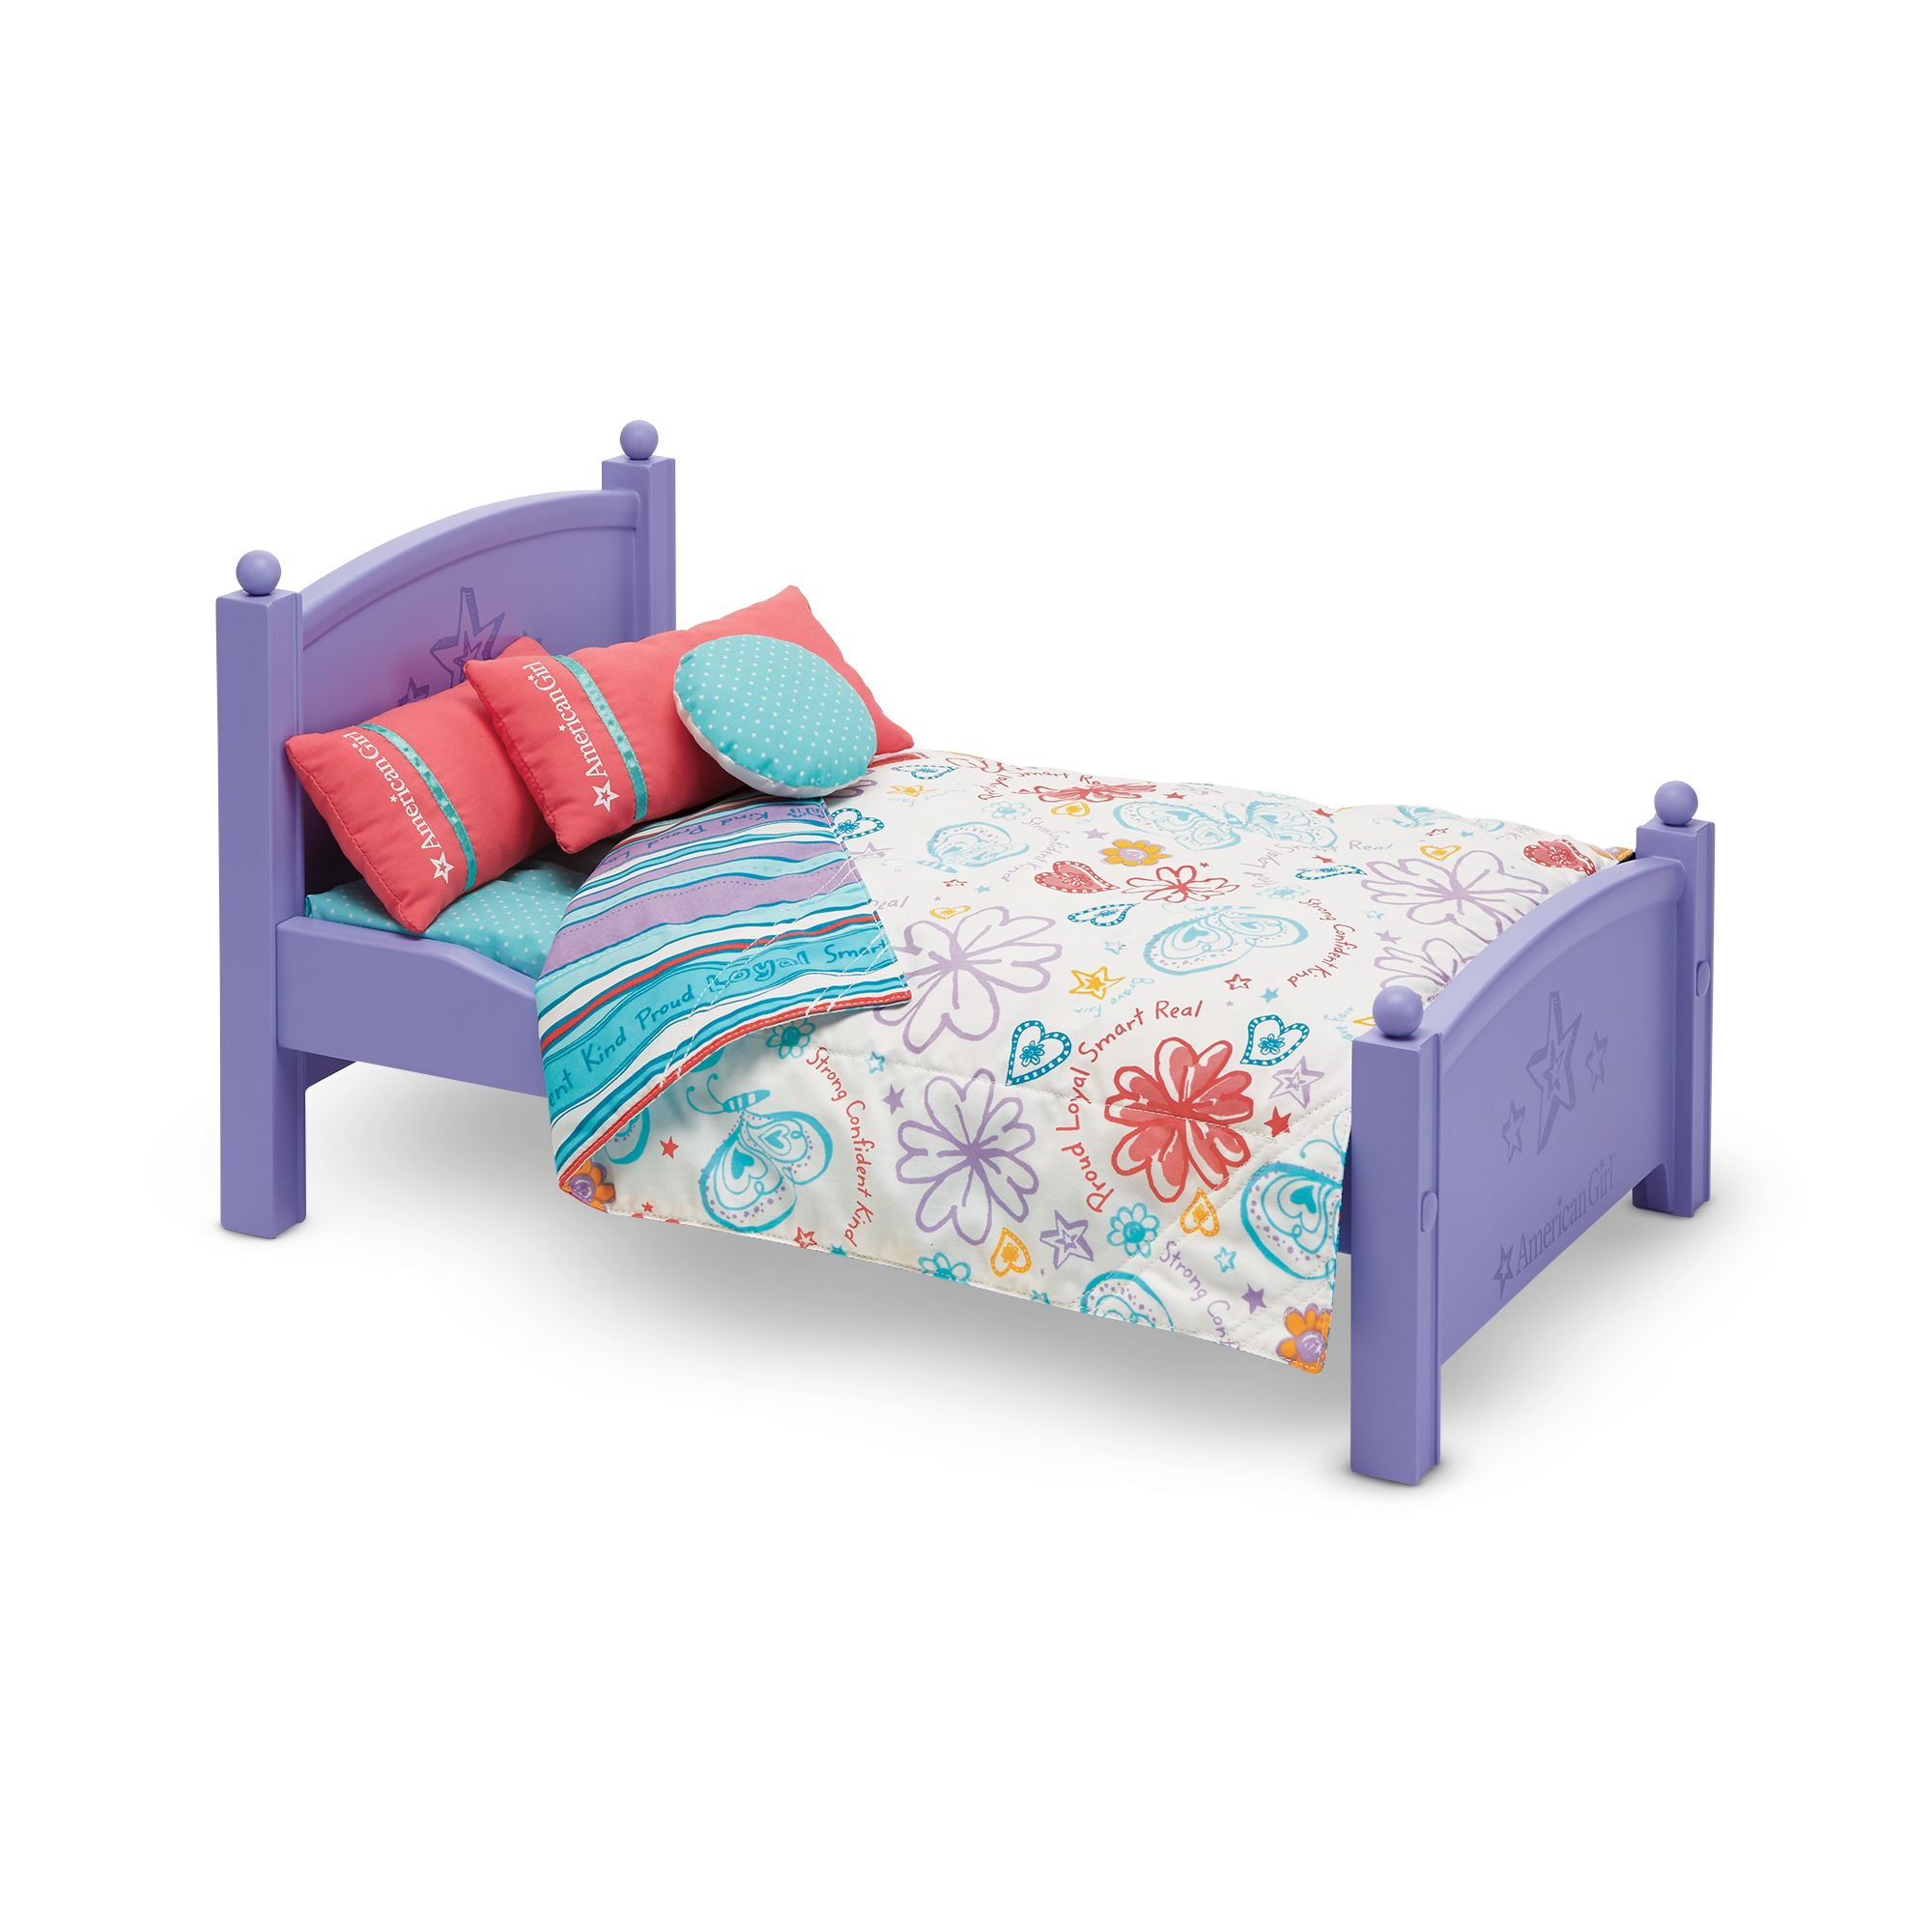 Mattress For American Girl Doll Bed